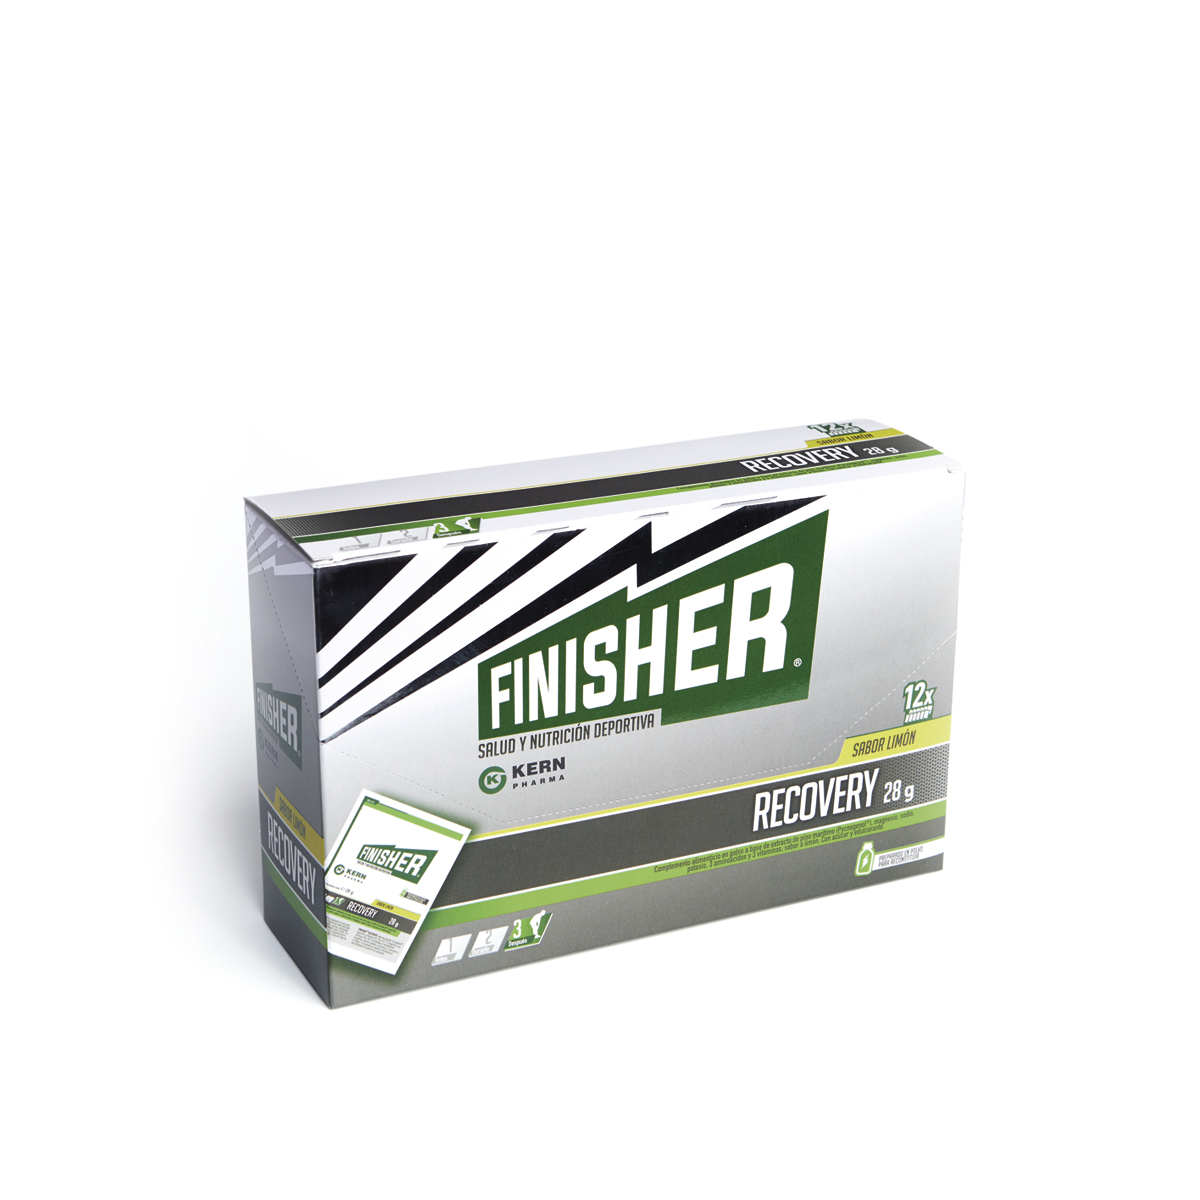 Imagen producto FINISHER® RECOVERY